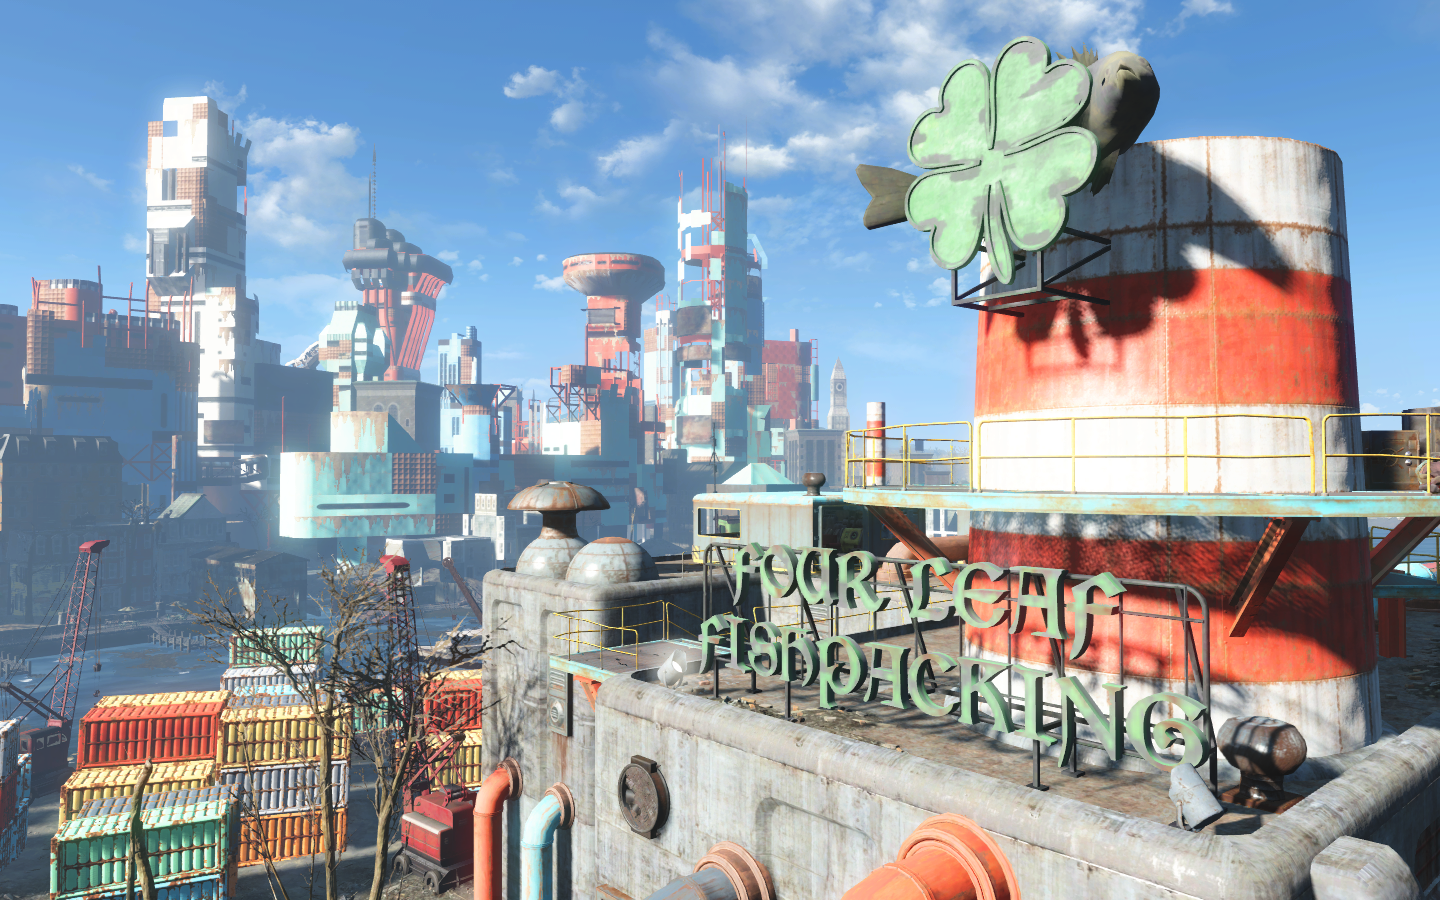 Fallout 4 Color Palette Appreciation Post #Fallout4 #gaming #Fallout #Bethesda #games #PS4share #PS4 #FO4